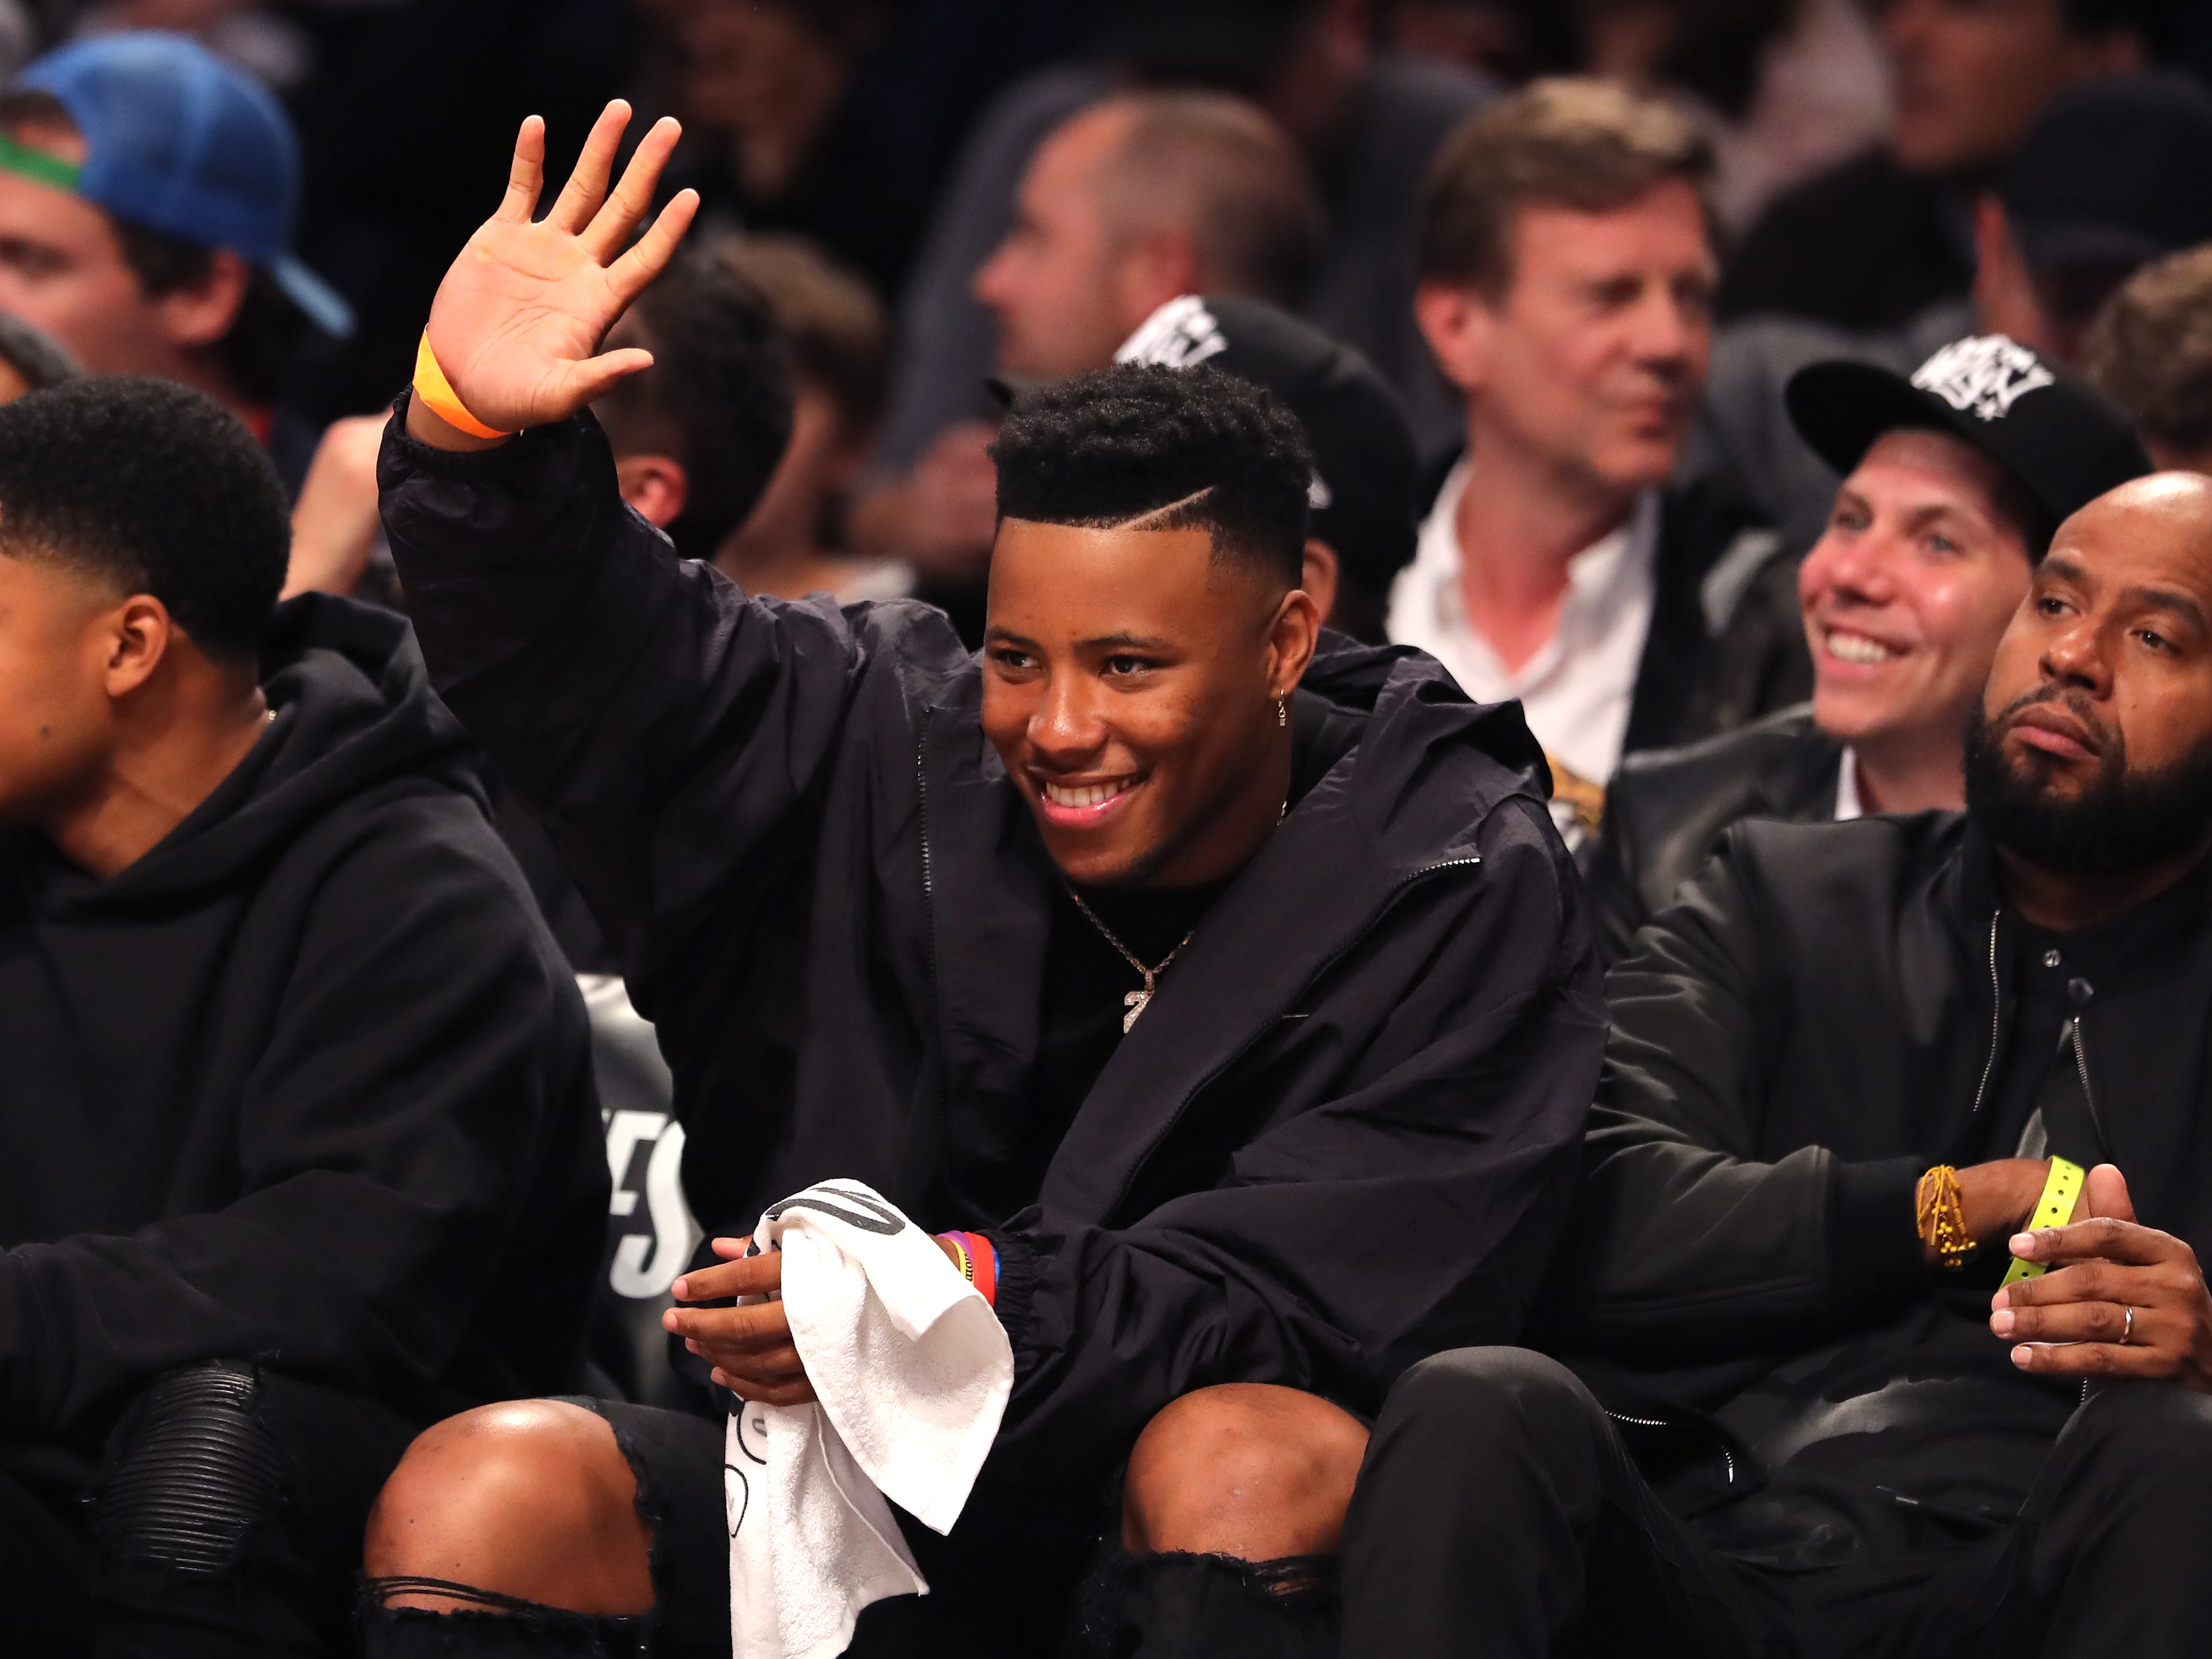 April 18: Saquon Barkley of the New York Giants attends Game 3 between the Nets and 76ers in Brooklyn.